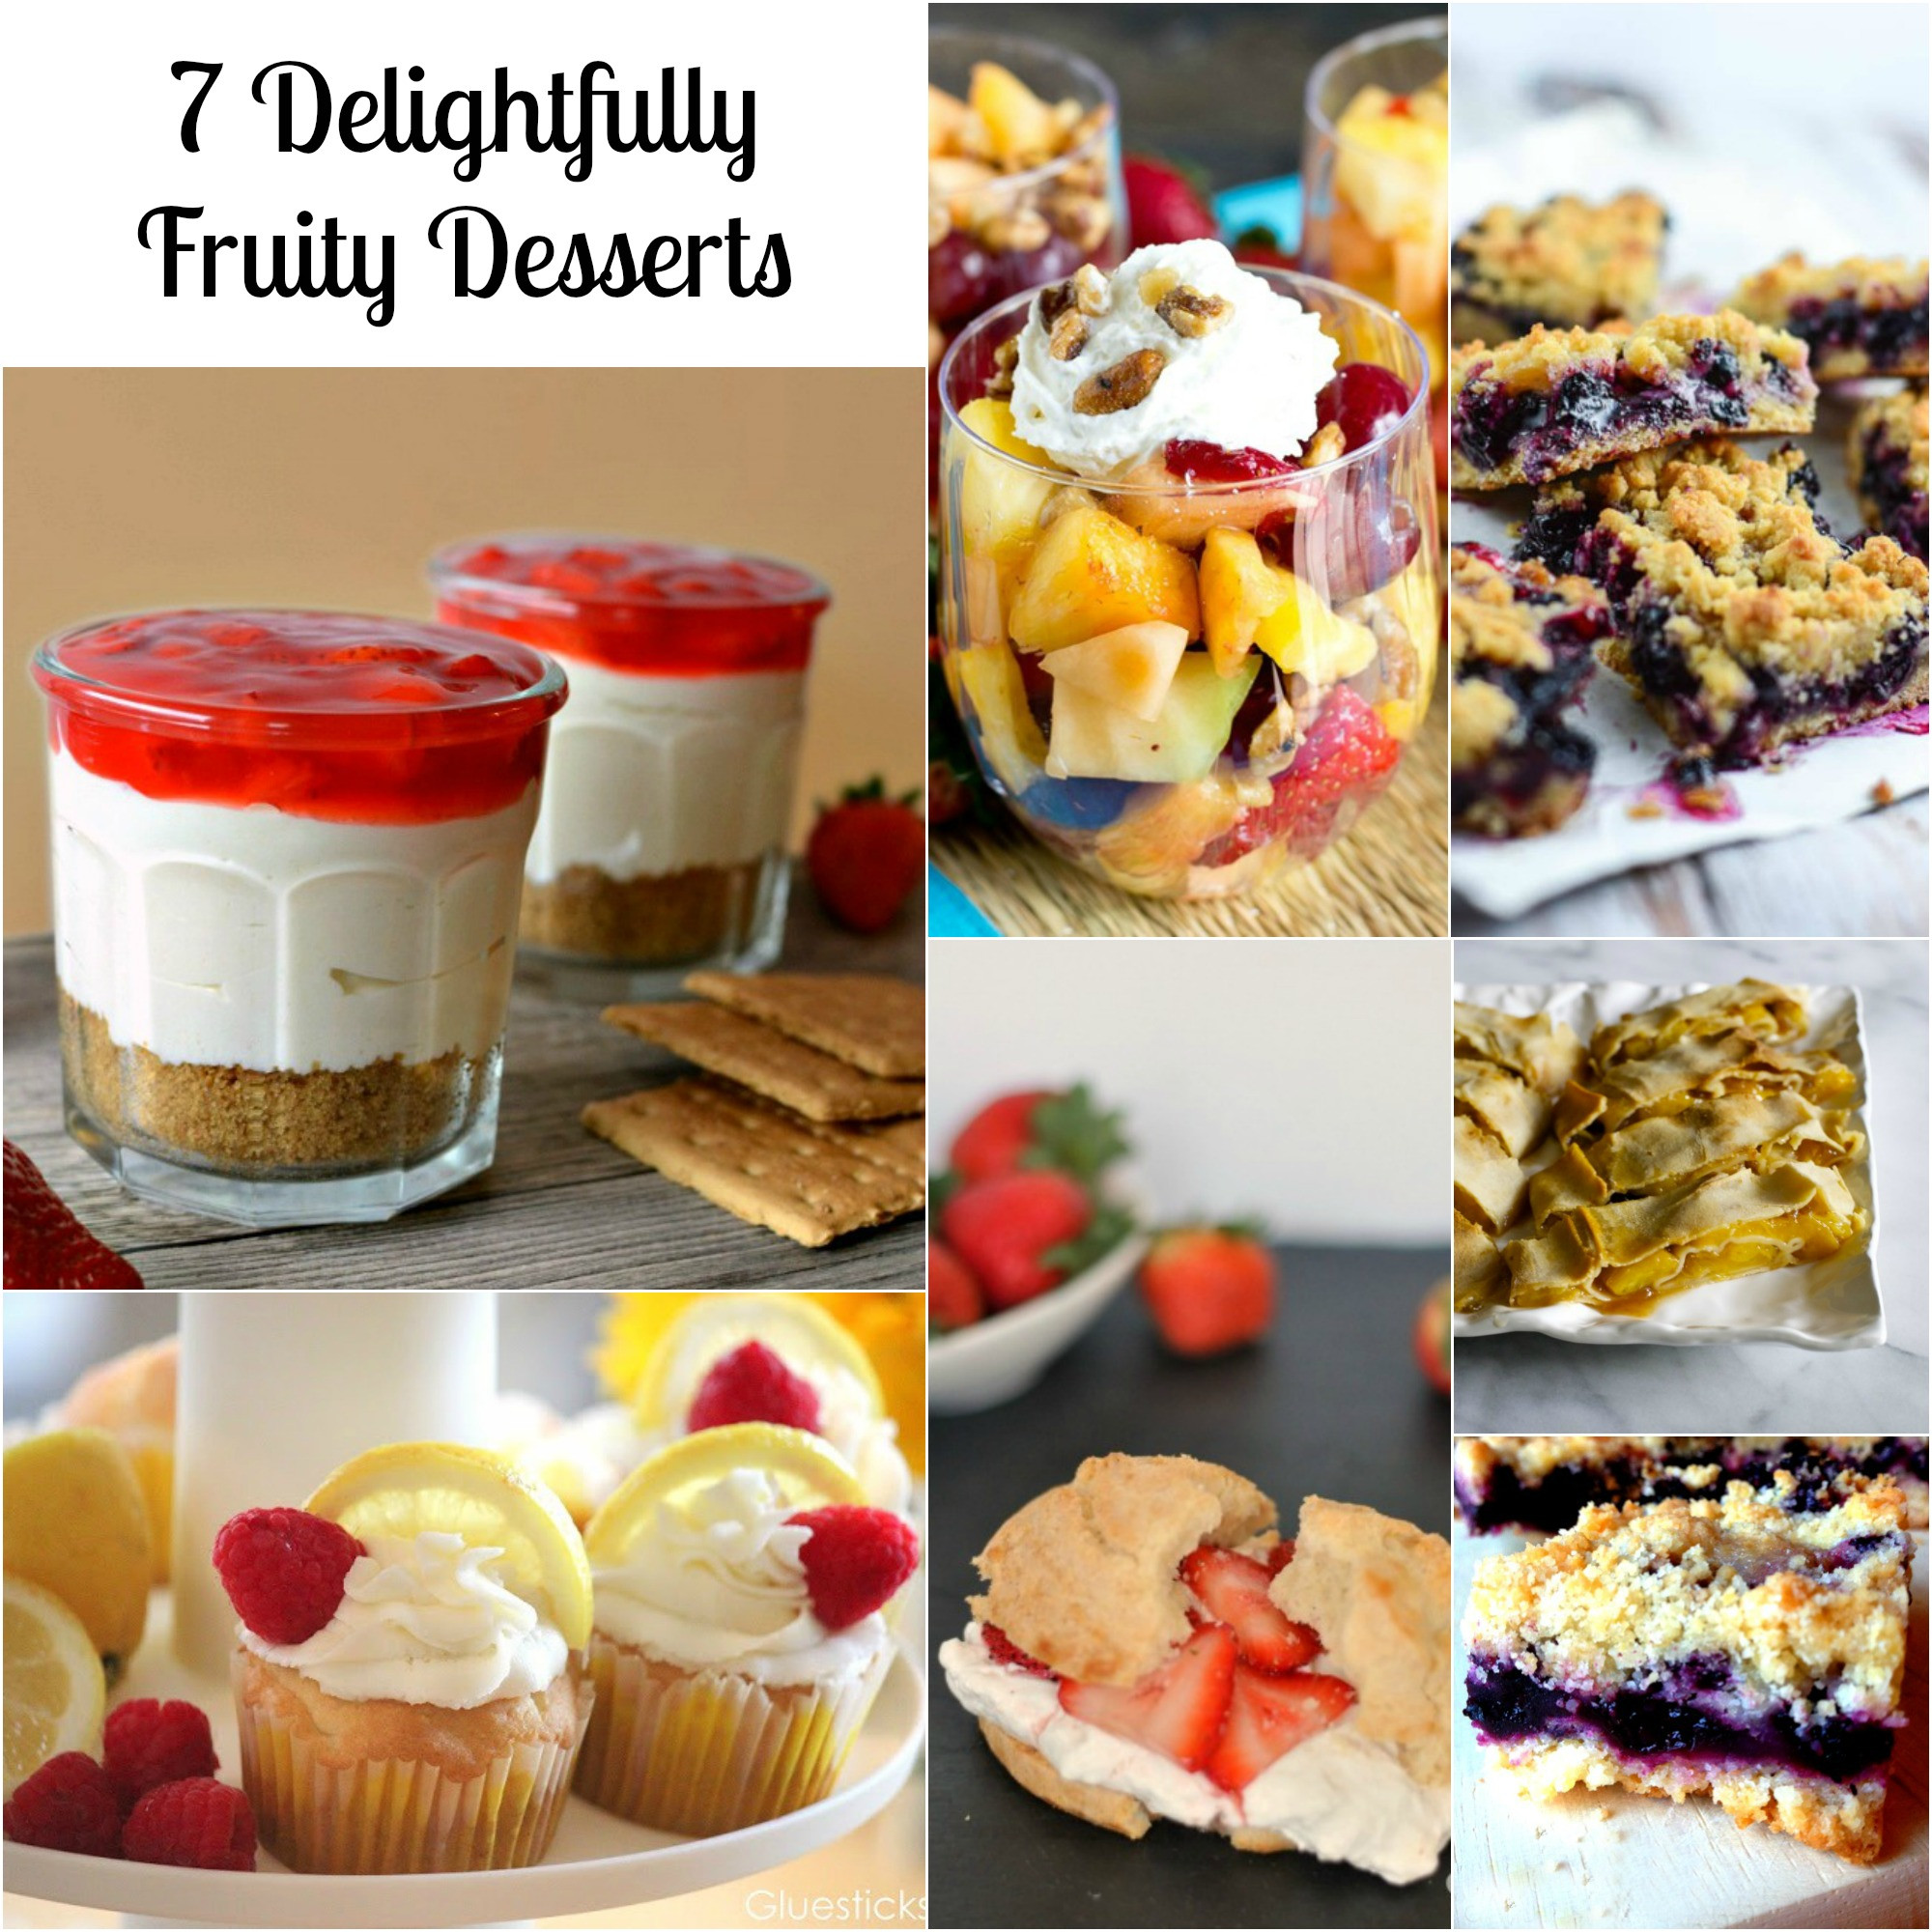 Summer Dessert Recipes  7 Summer Dessert Recipes You Have to Try SoFabFood